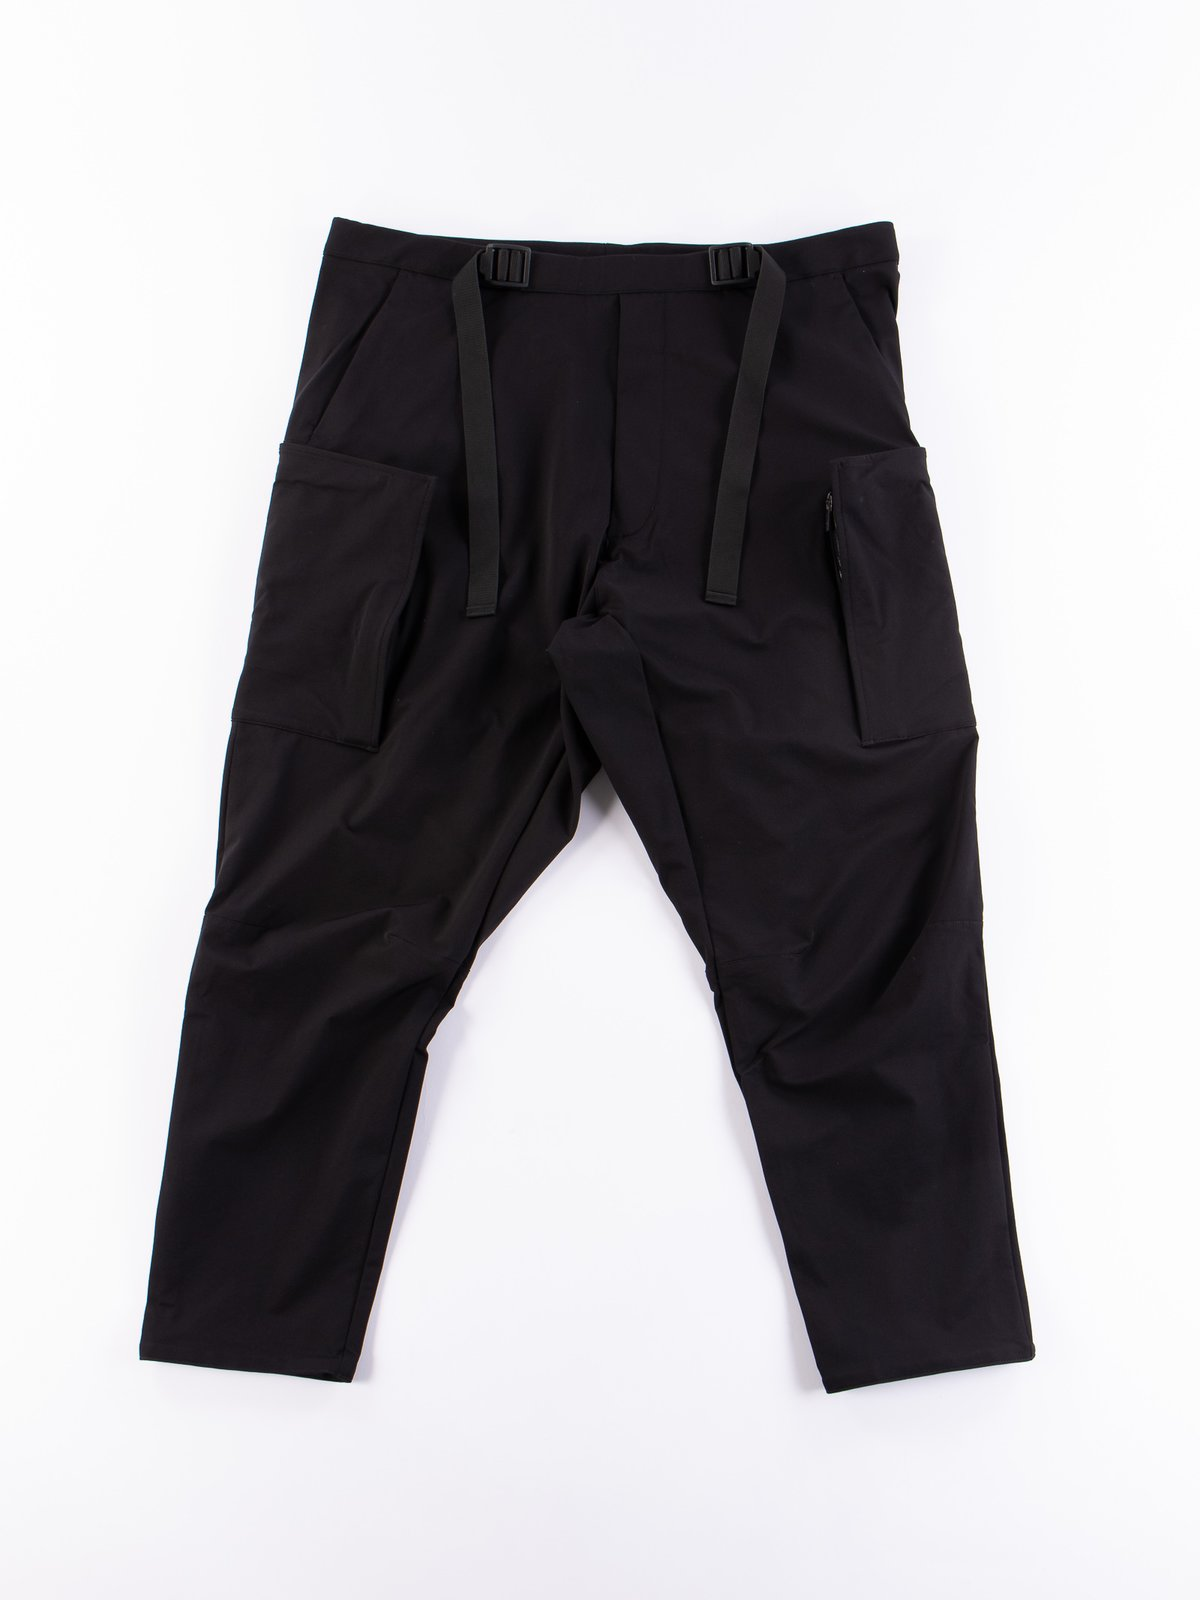 P31A–DS Black Schoeller Dryskin Drawcord Cargo Trouser - Image 1